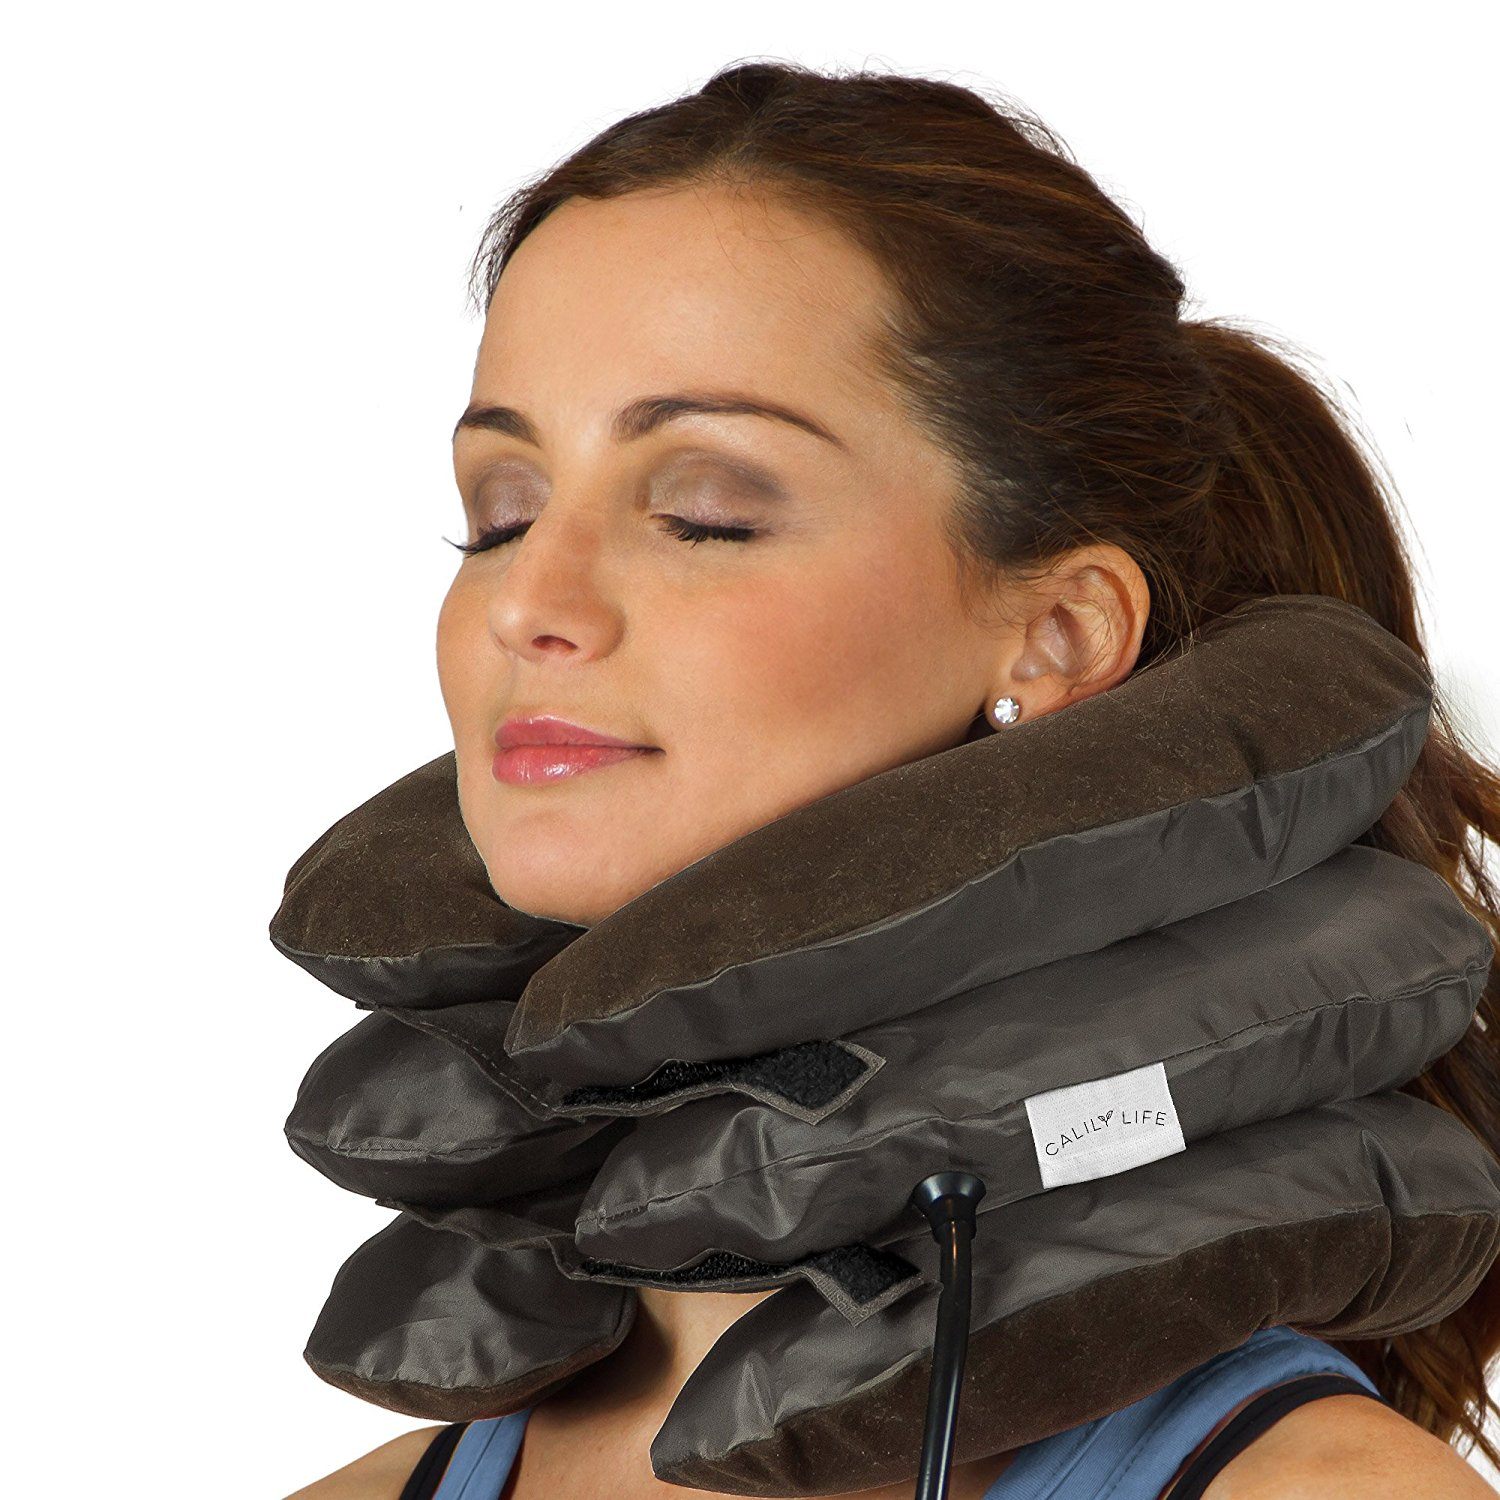 Spine Neck Traction Device Inflatable Neck Brace Neck Collar Support For Pain